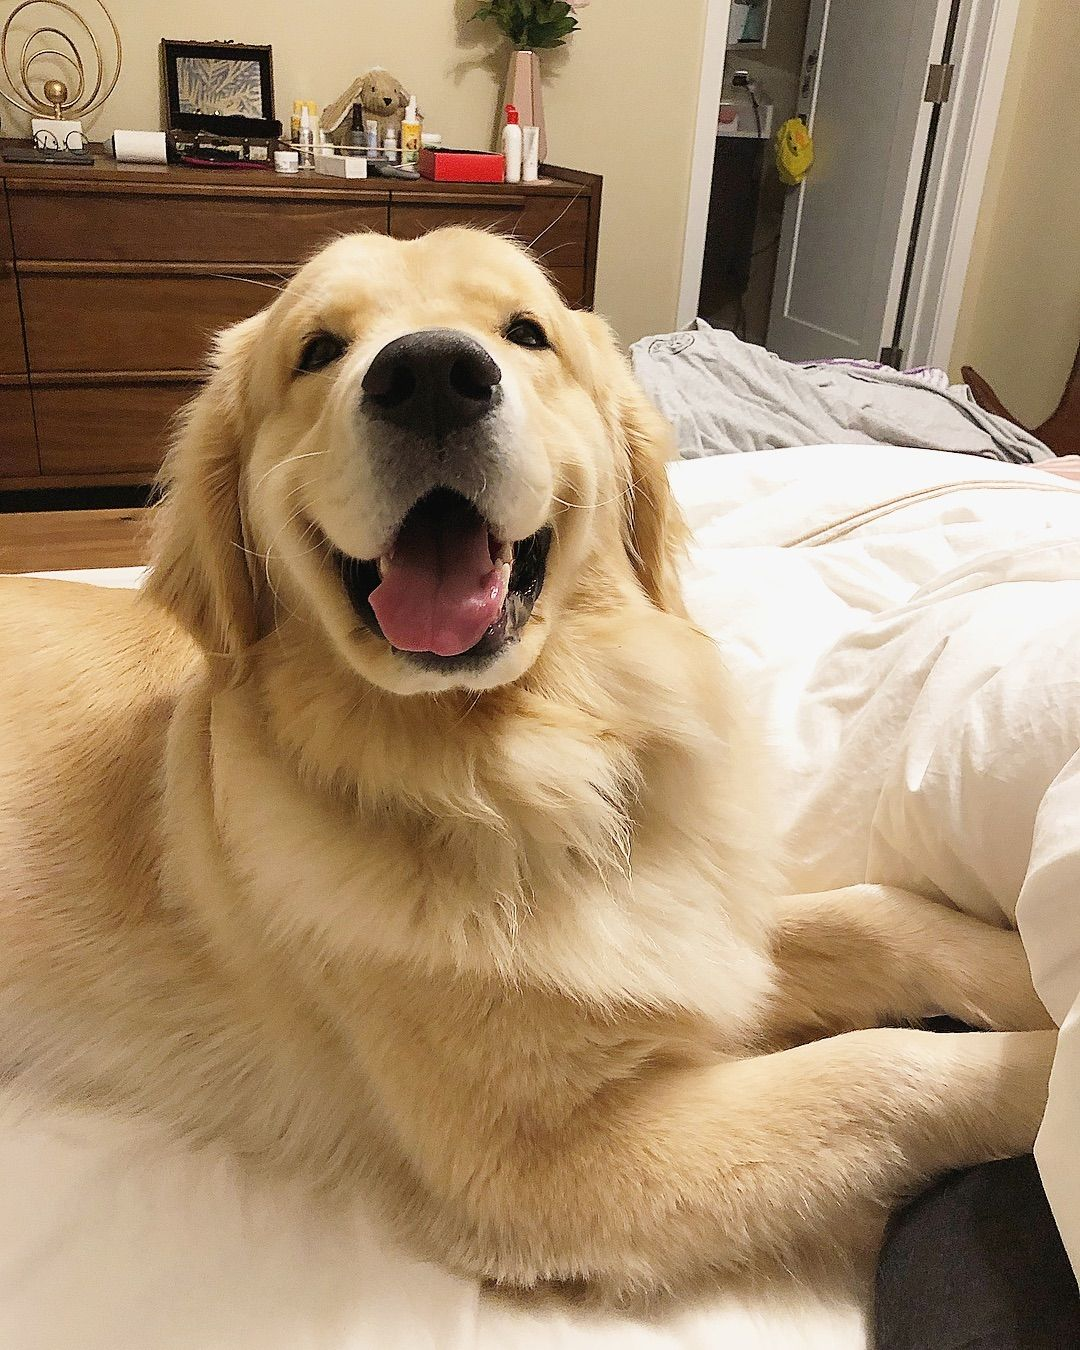 Maui On Instagram My Paws Got Frozen May I Borrow Your Quilt For A Moment To Warm Them Up Politeboy Labrador Retriever Puppies Baby Dogs Cute Dogs